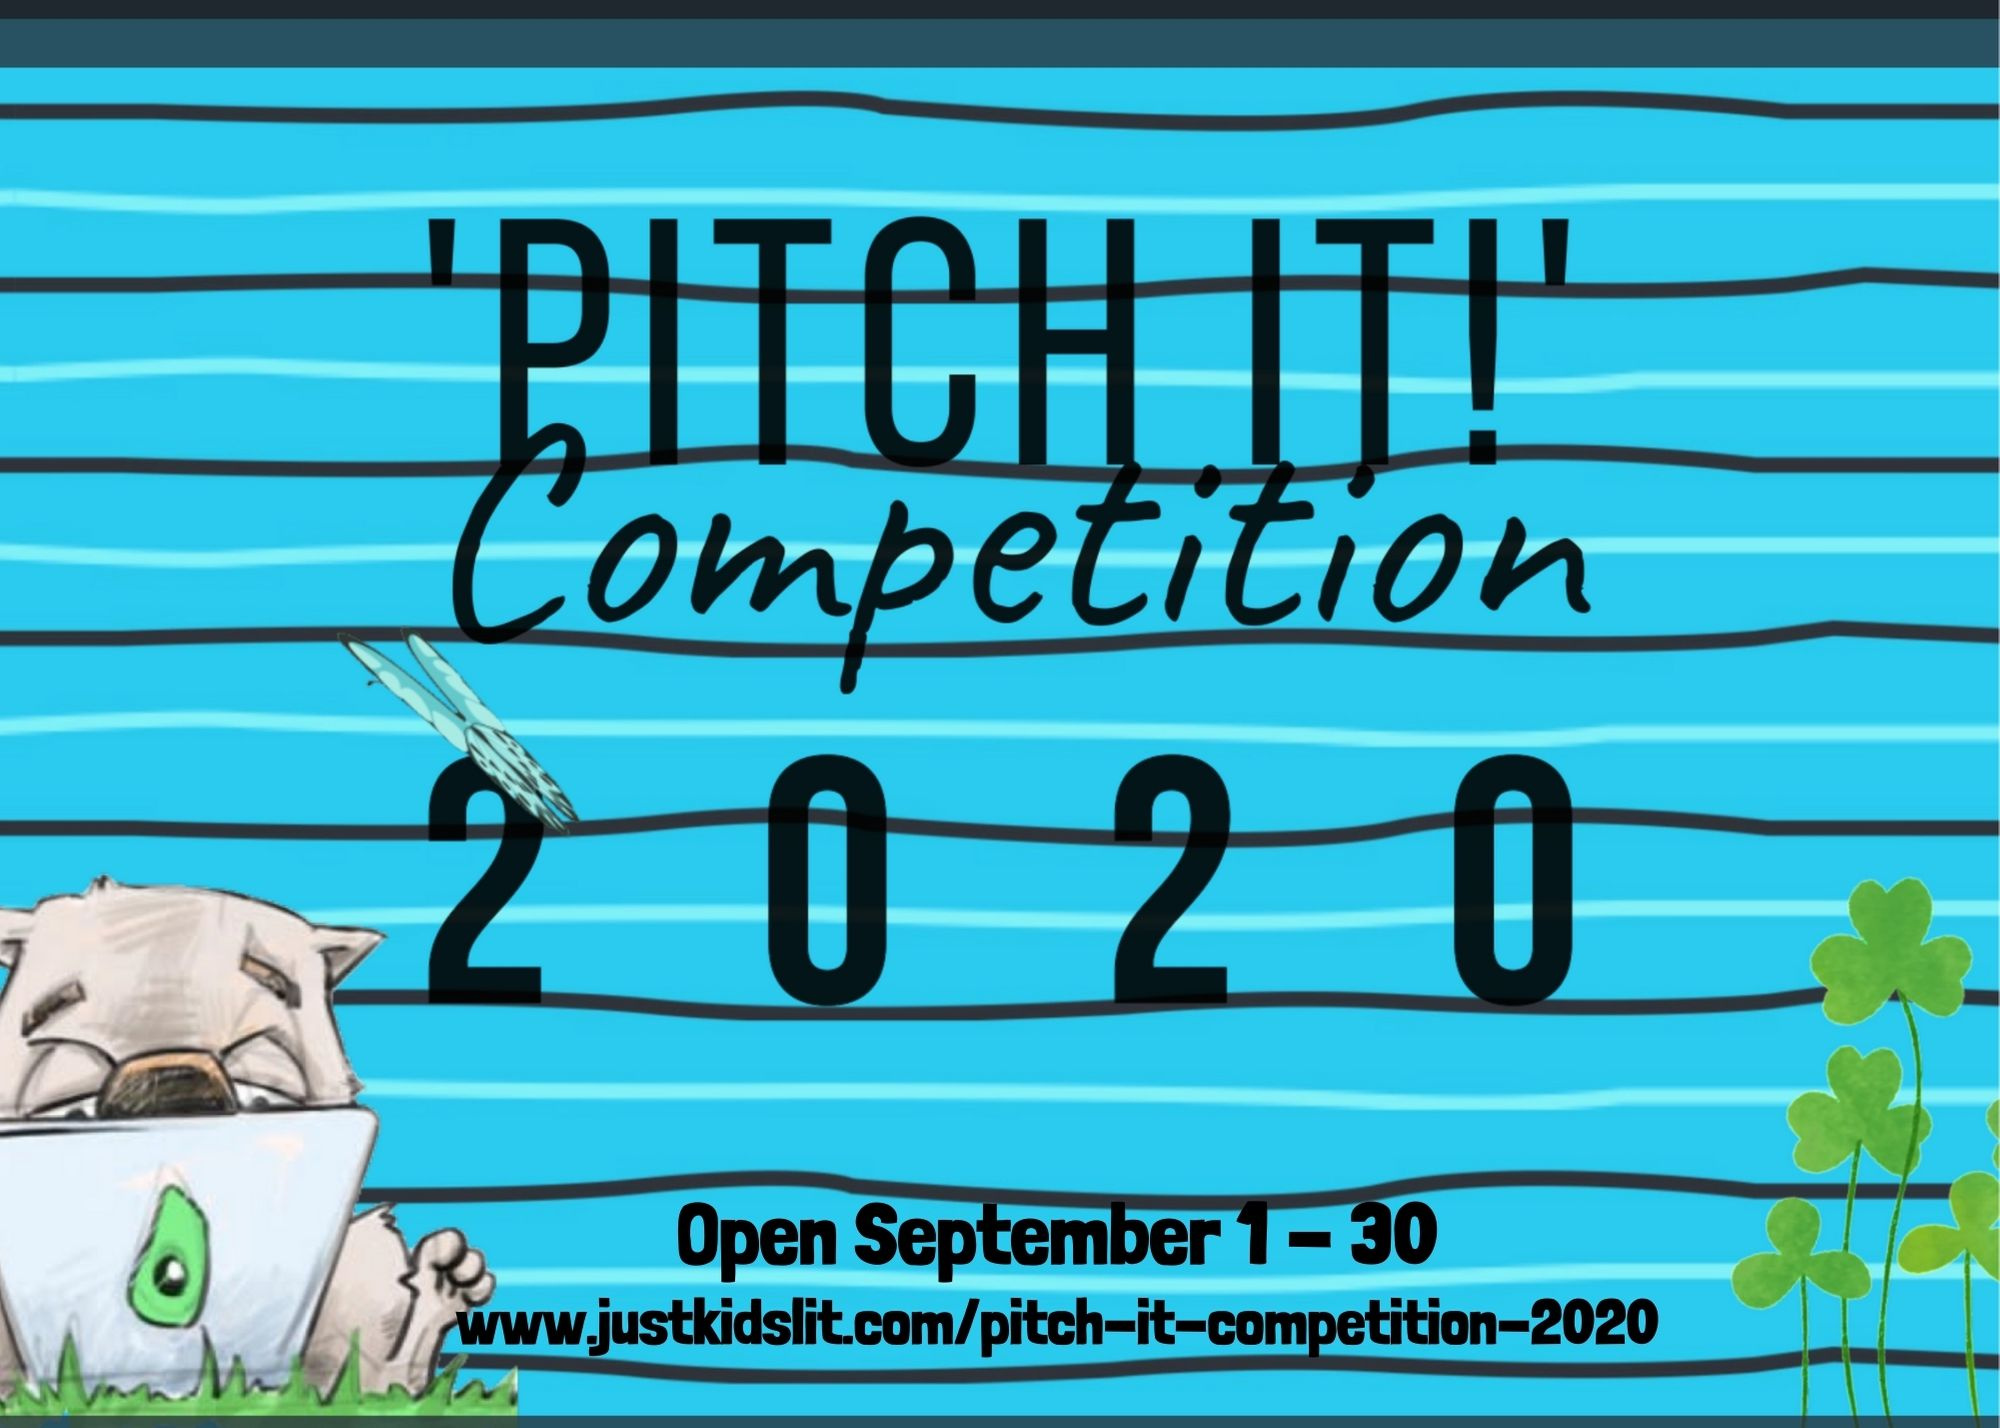 Pitch It! Competition